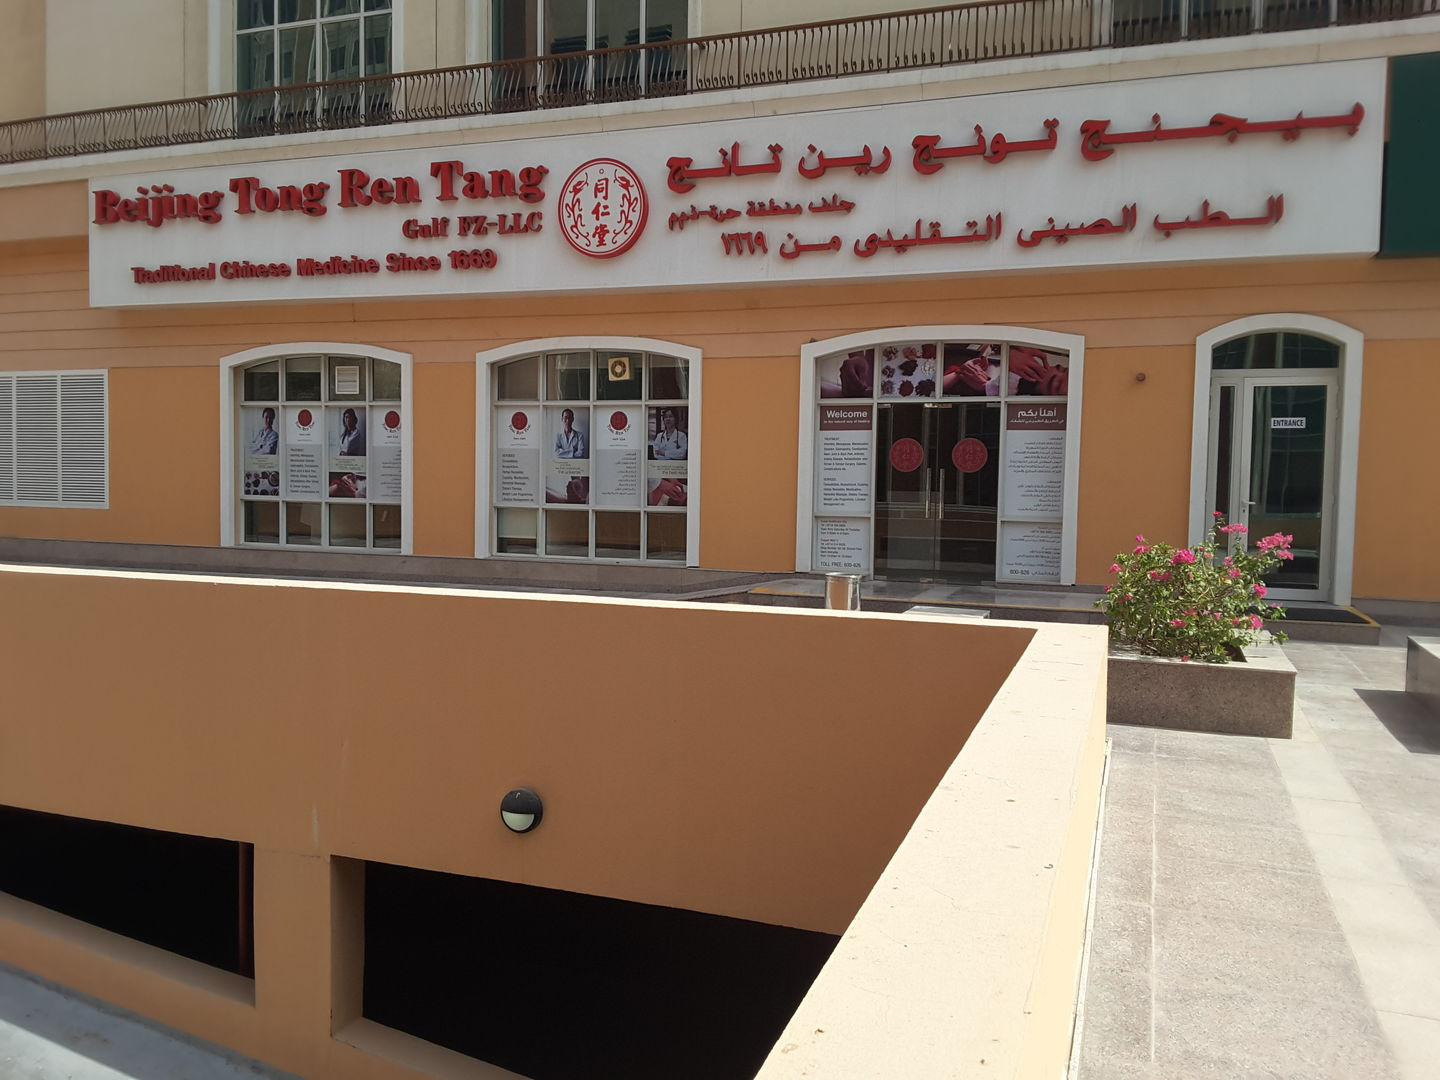 HiDubai-business-beijing-tong-ren-tang-gulf-medical-clinic-beauty-wellness-health-homeopathy-alternative-medicine-oud-metha-dubai-2